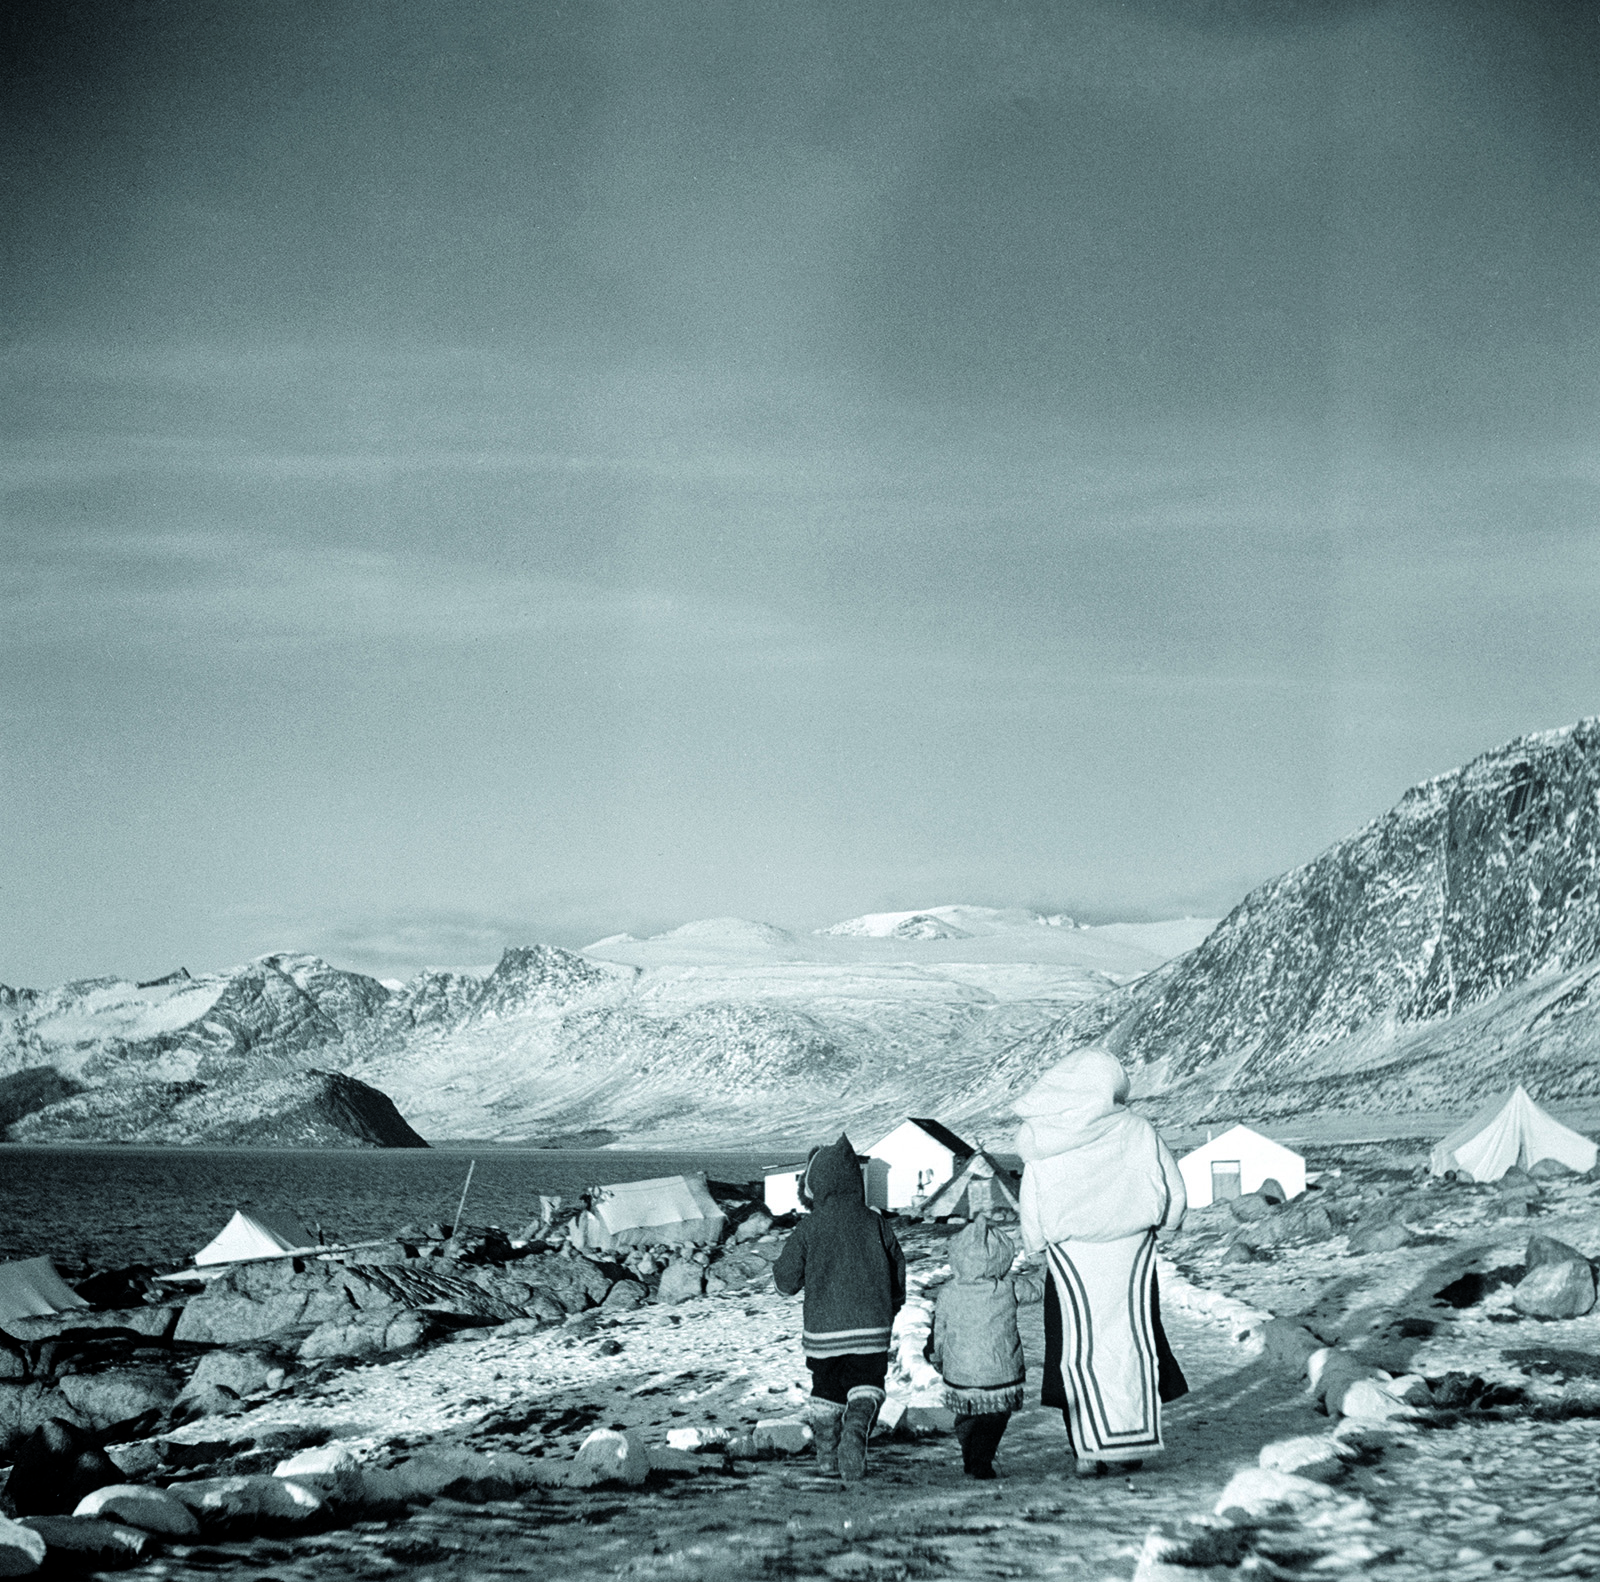 Inuit women and children Pangnirtung 1940s by George Hunter